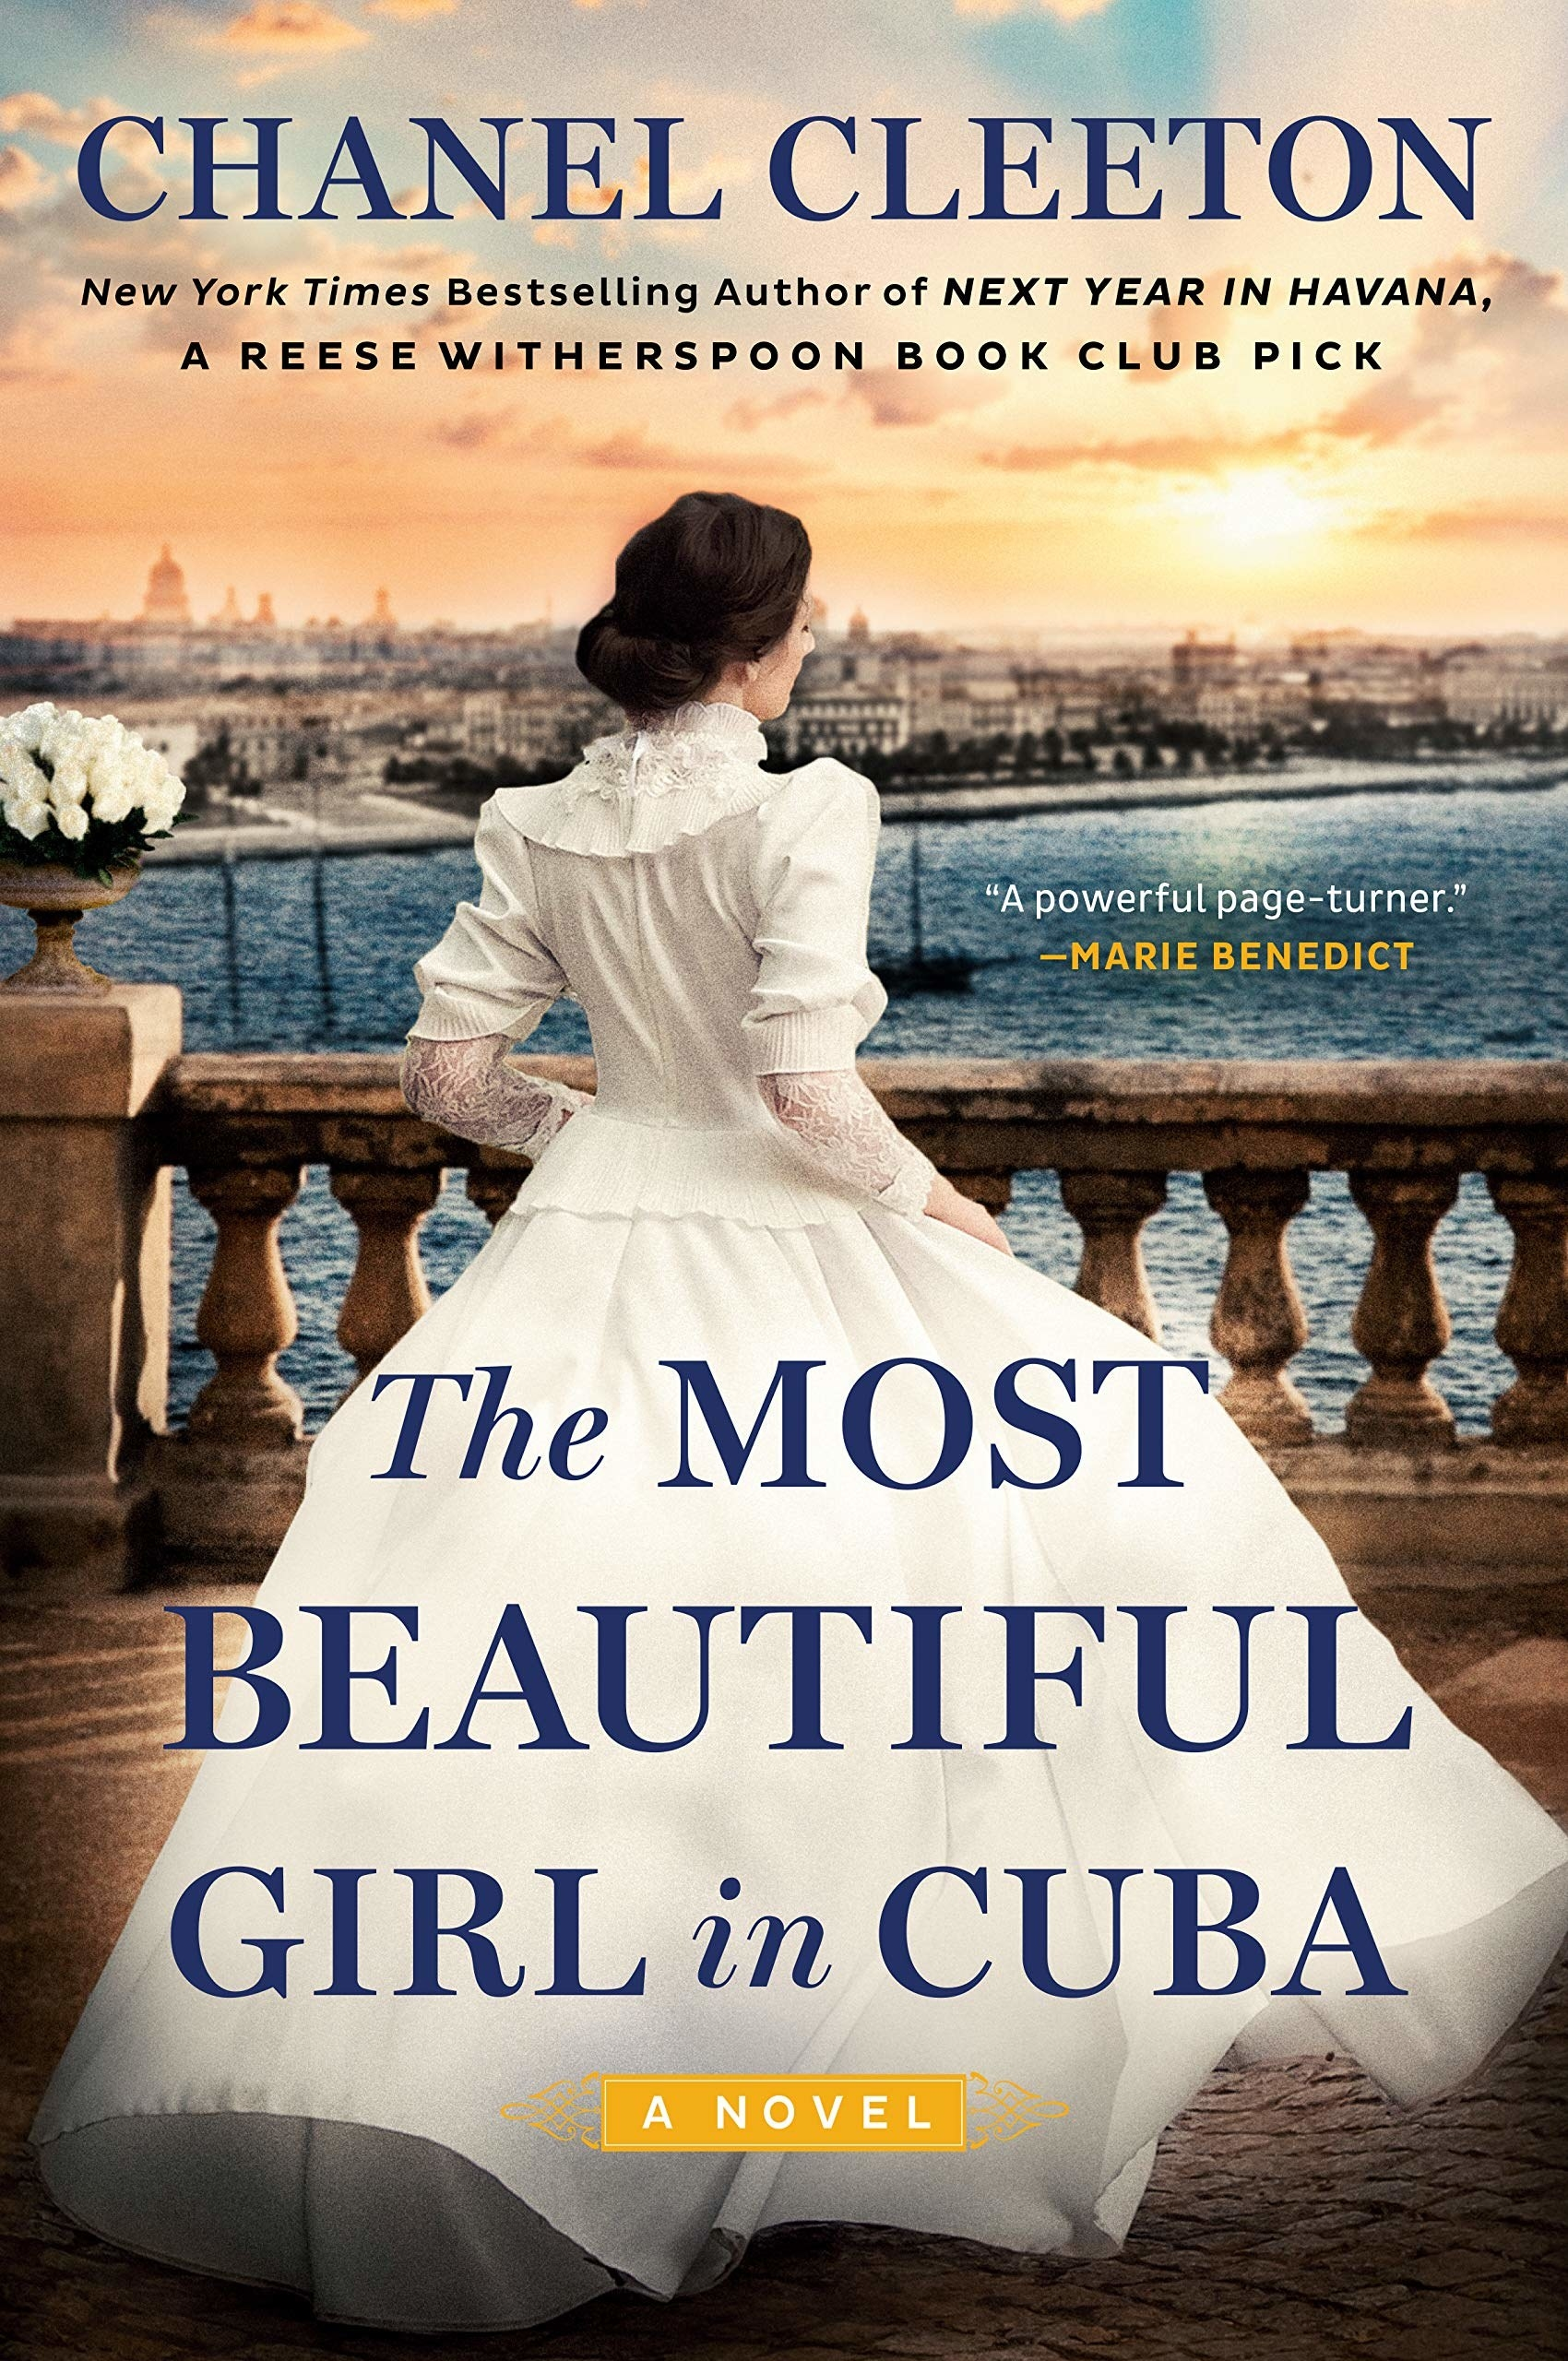 the book's cover with a woman in a long dress overlooking a harbor